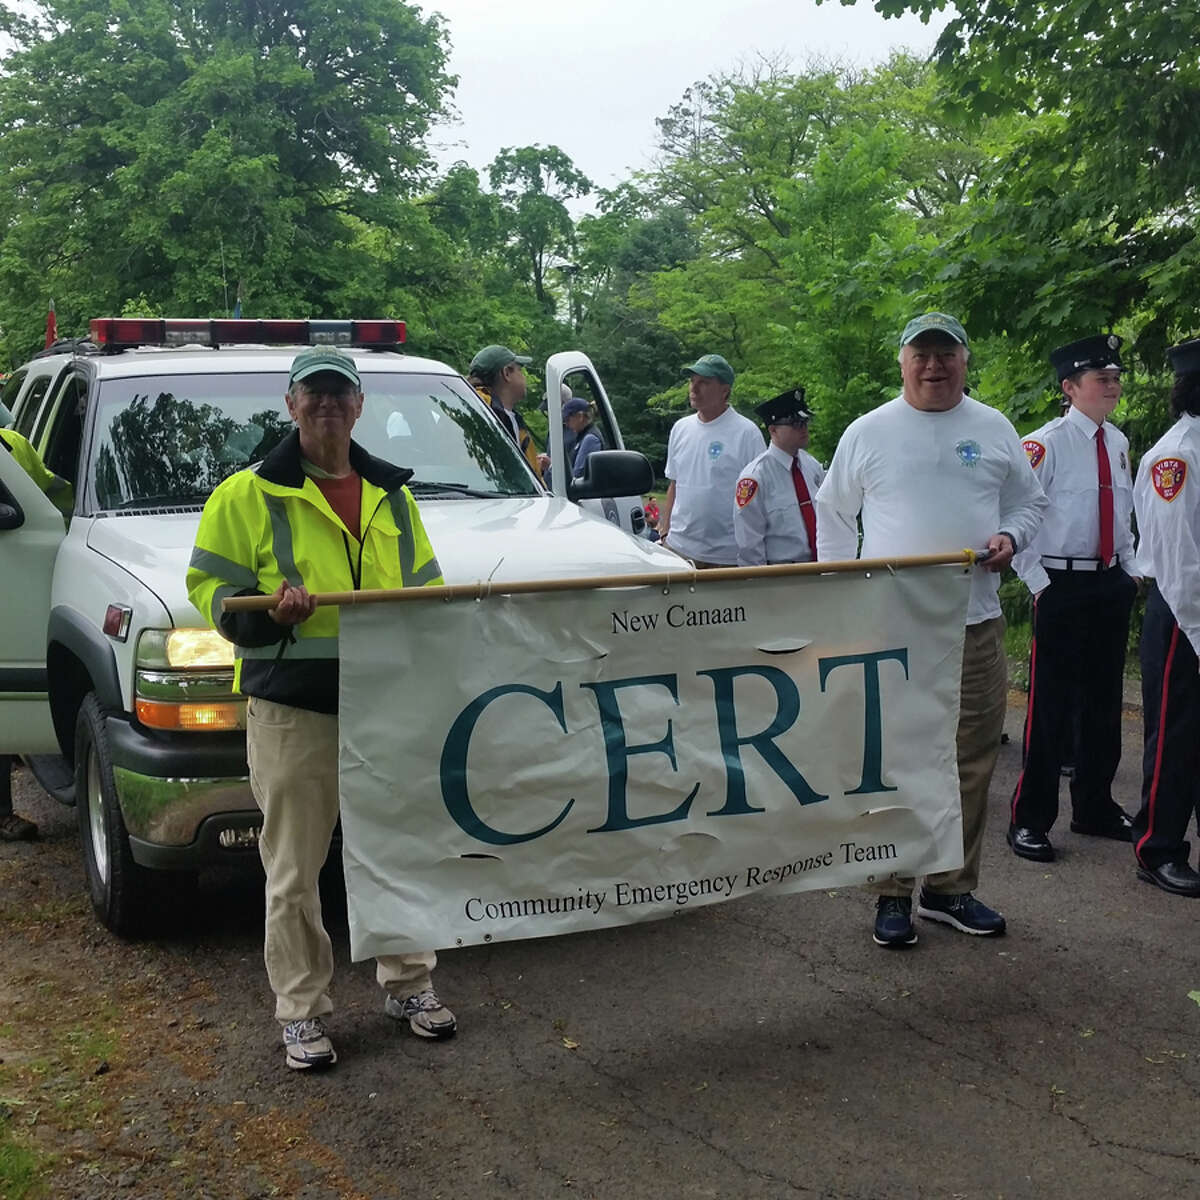 New Canaan Community Emergency Response Team volunteers are taught how to keep themselves, and others, save during an emergency. Contributed photo